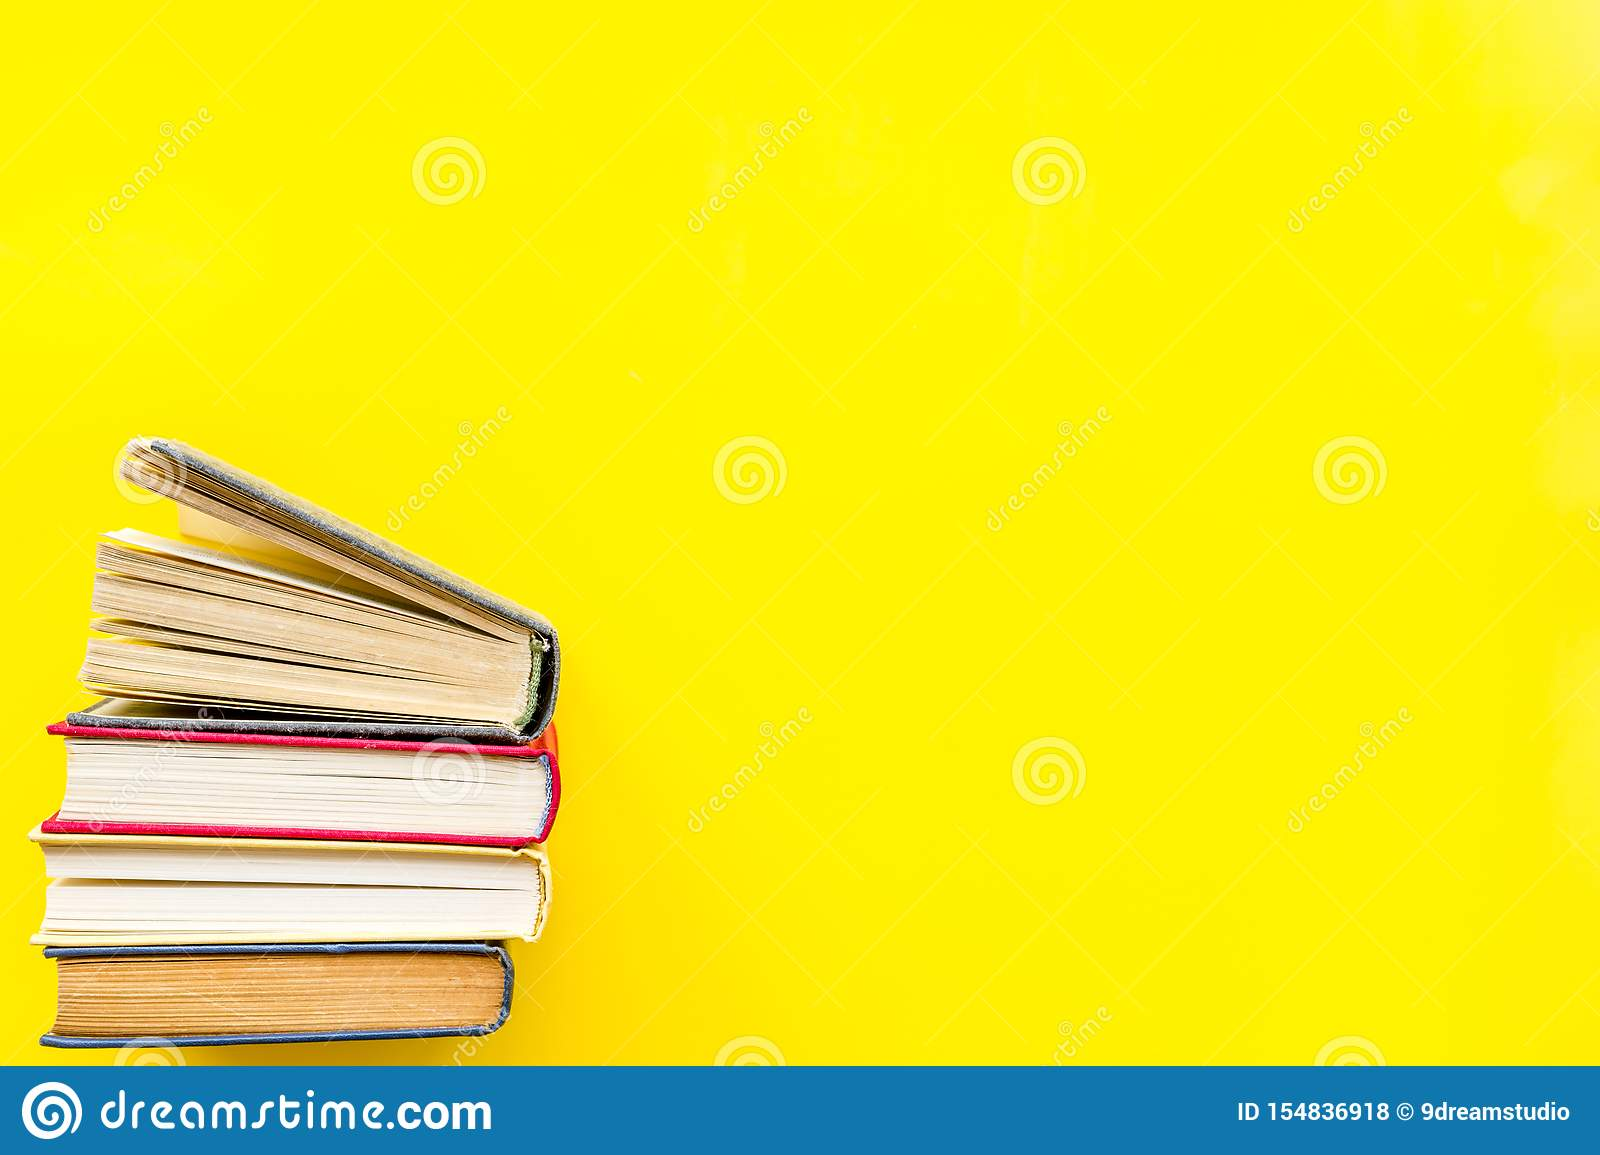 Download Workplace With Books On Yellow Background Flatlay Mockup Stock Photo Image Of Desk Education 154836918 Yellowimages Mockups